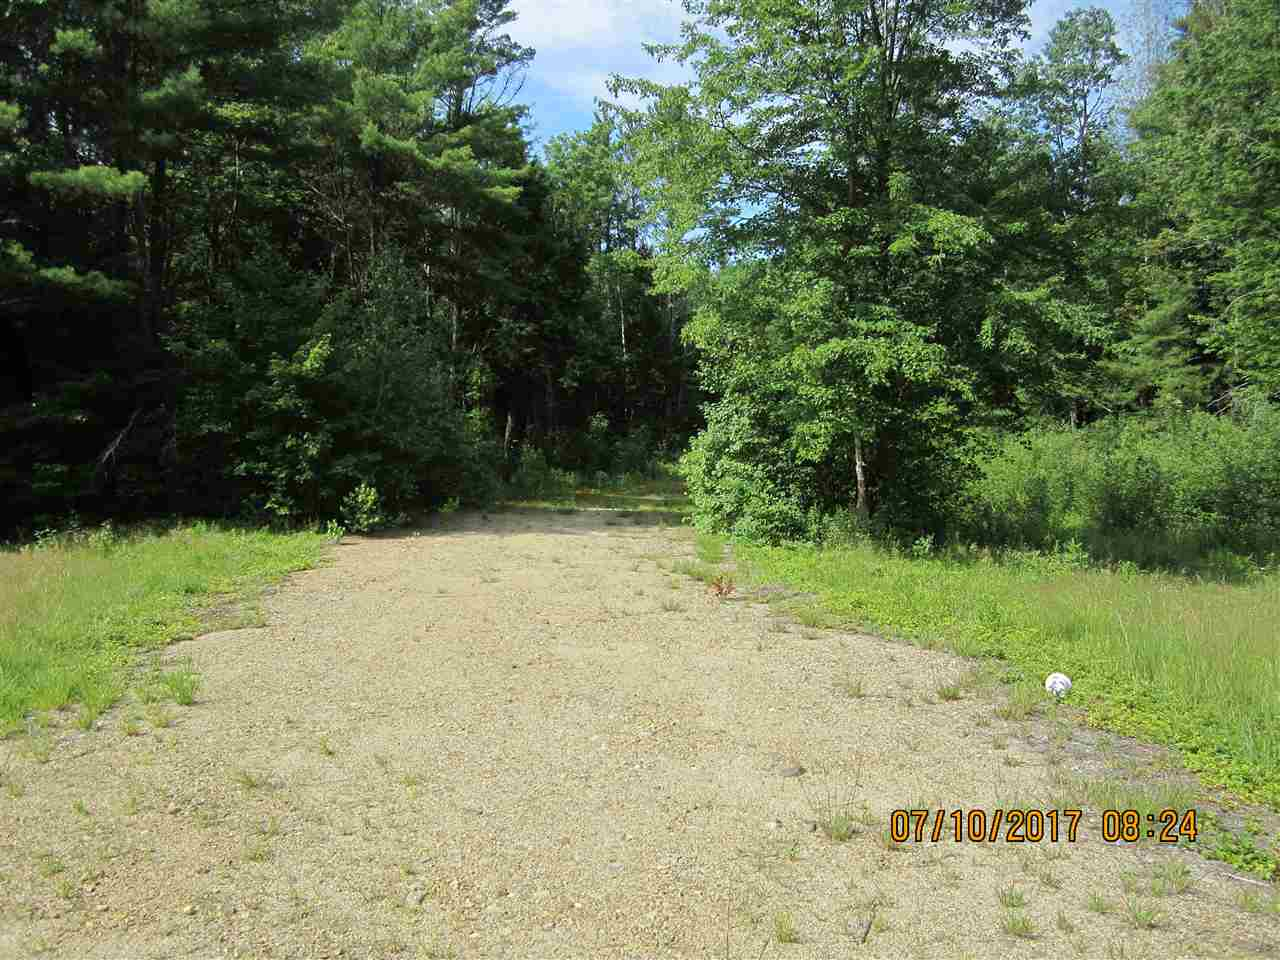 MLS 4241337: 0 Rt 12 Road, Fitzwilliam NH